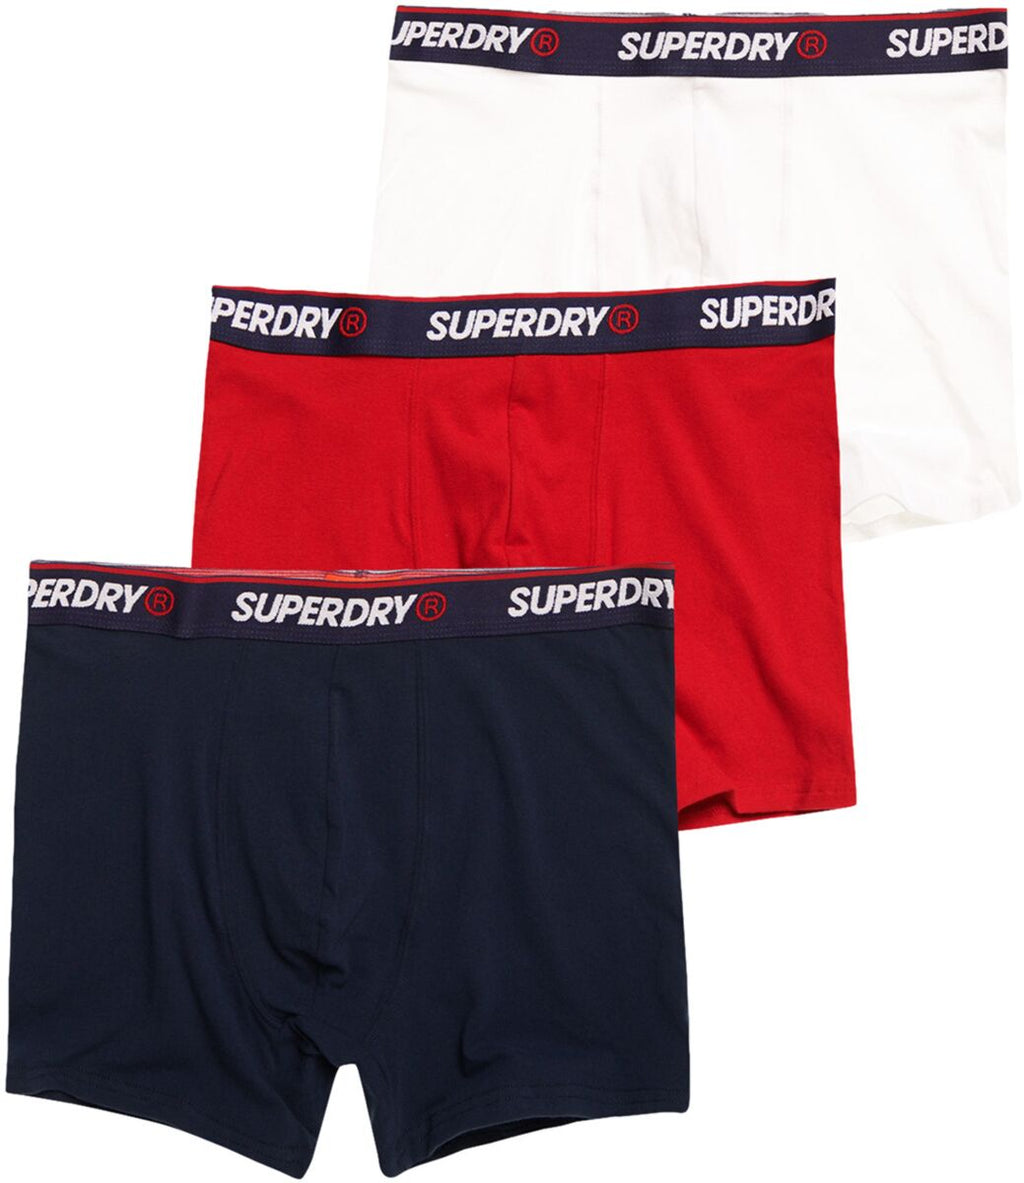 Superdry Classic 3 Pack Trunk Boxer Shorts Multi